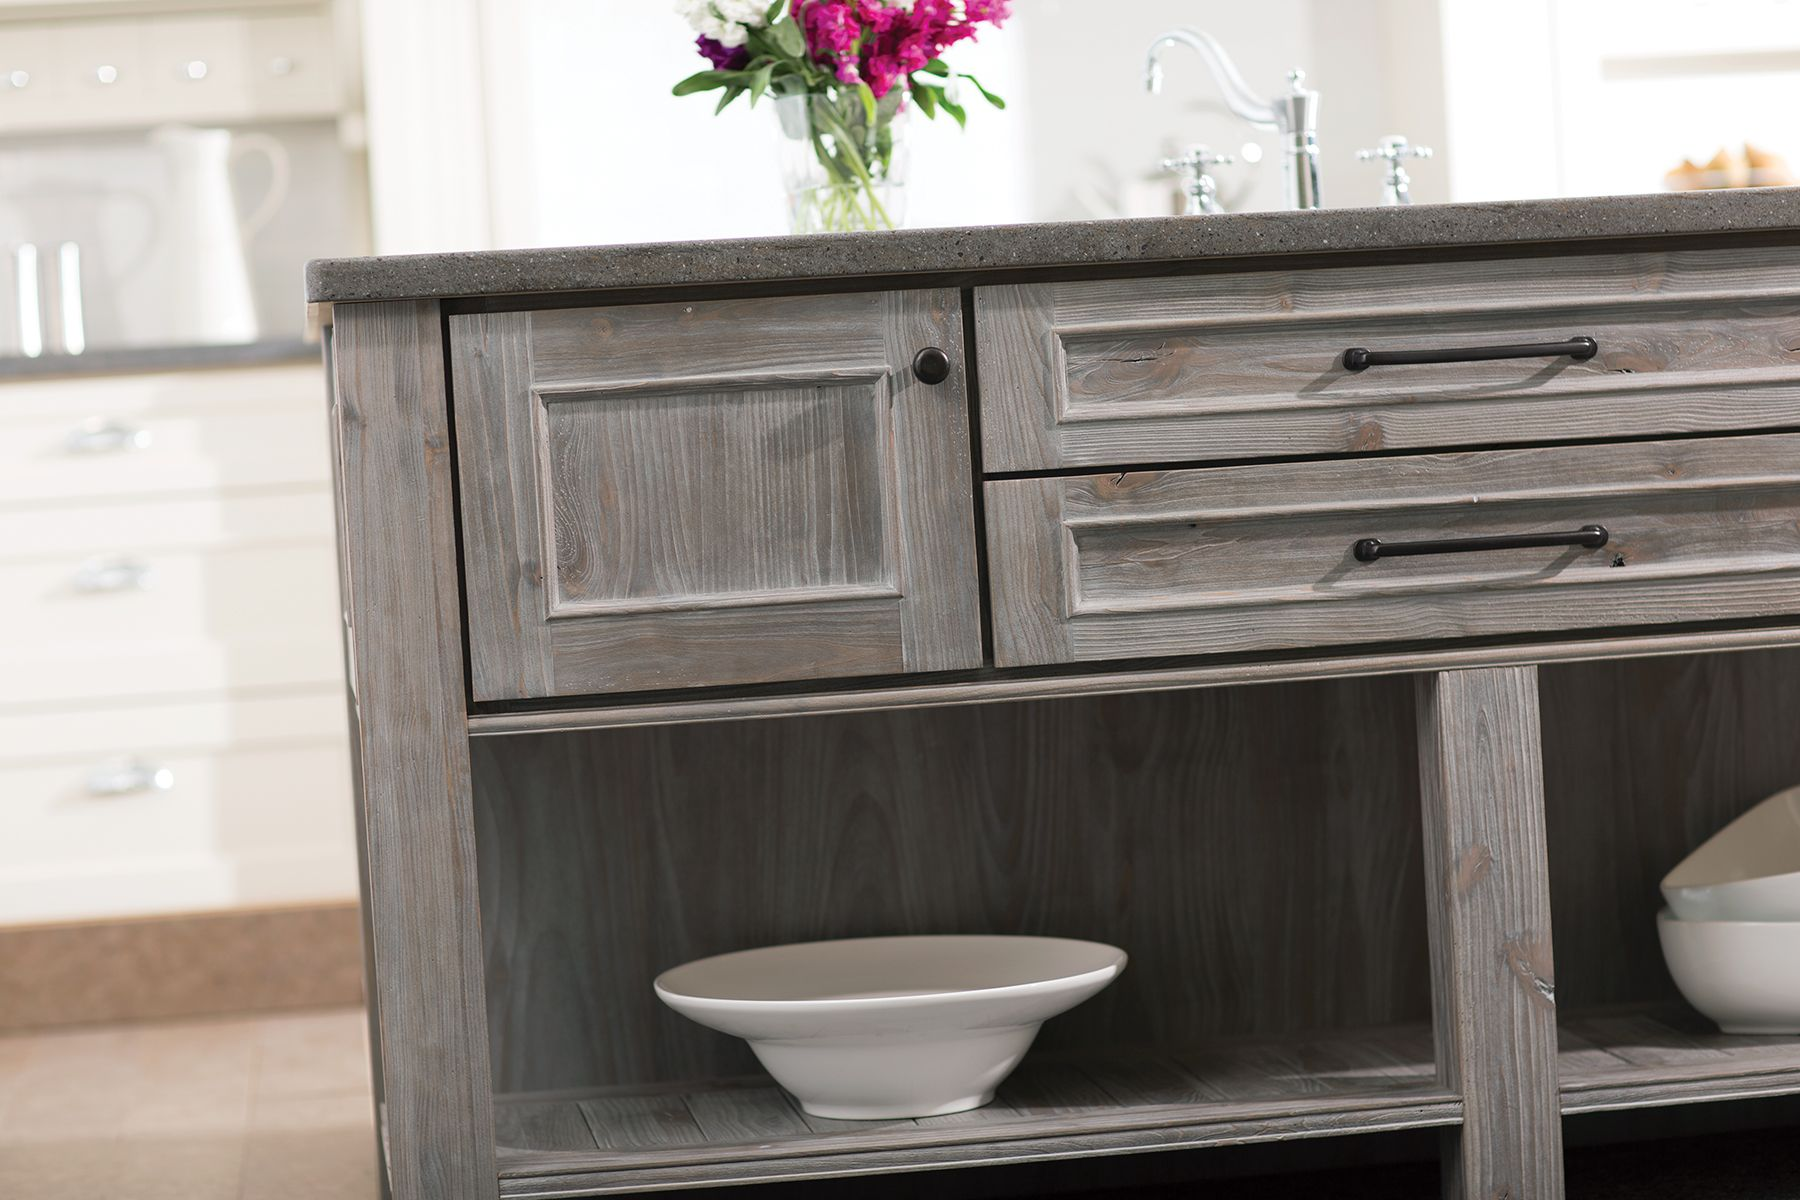 114 best dramatic cabinetry images on pinterest cabinets baths and kitchen makeovers